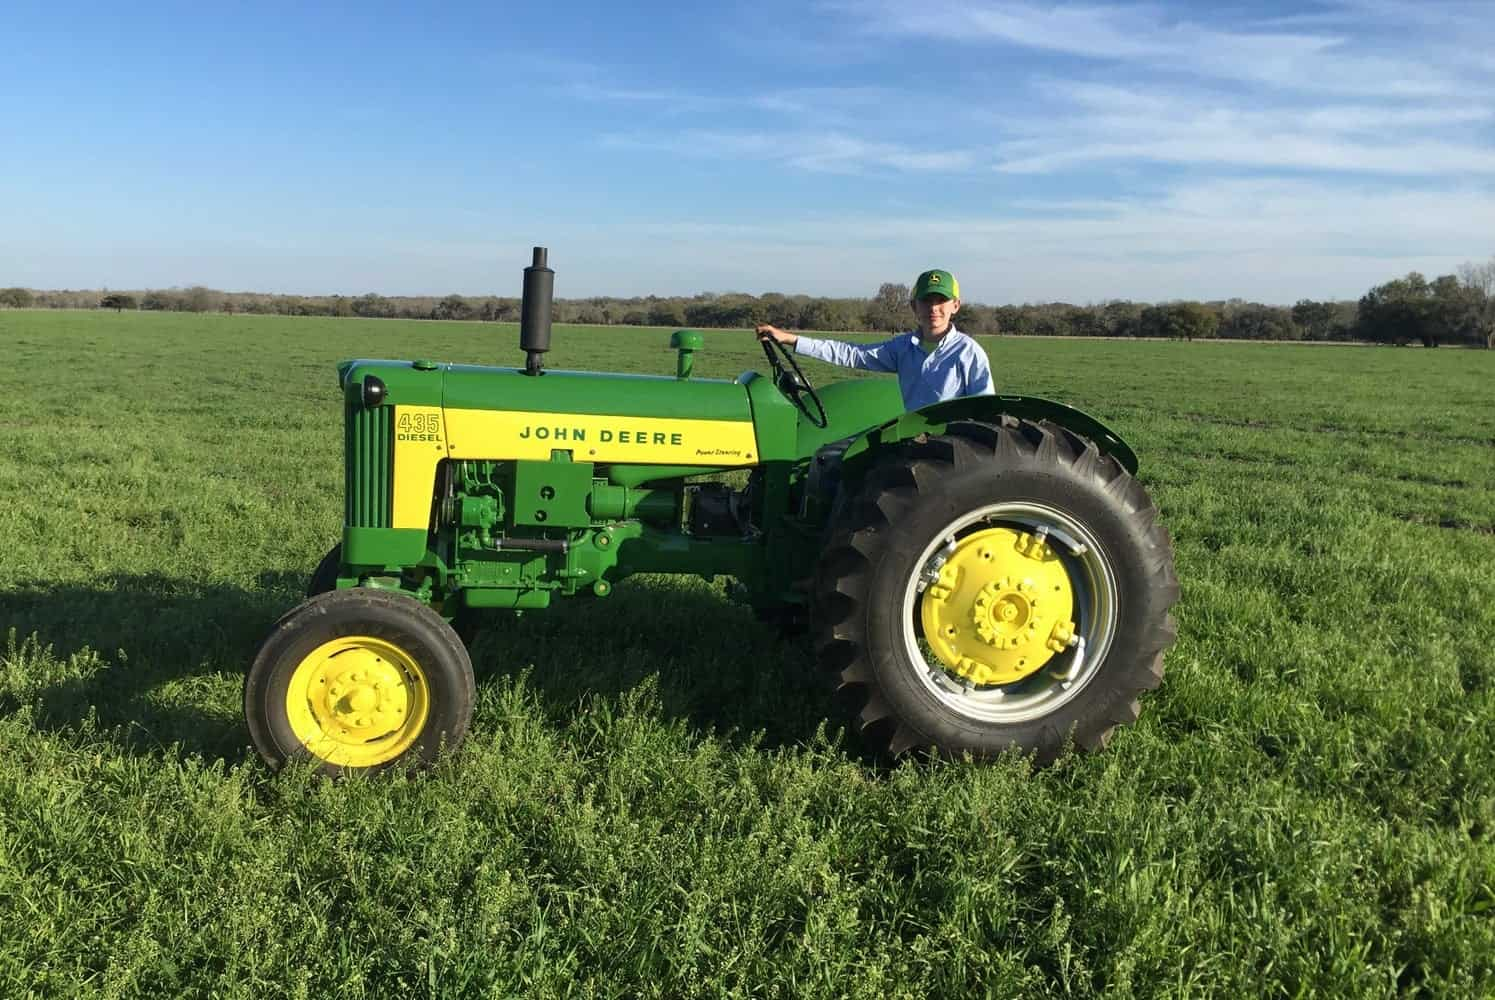 Chevron's Delo Tractor Restoration Competition connects students with opportunity.